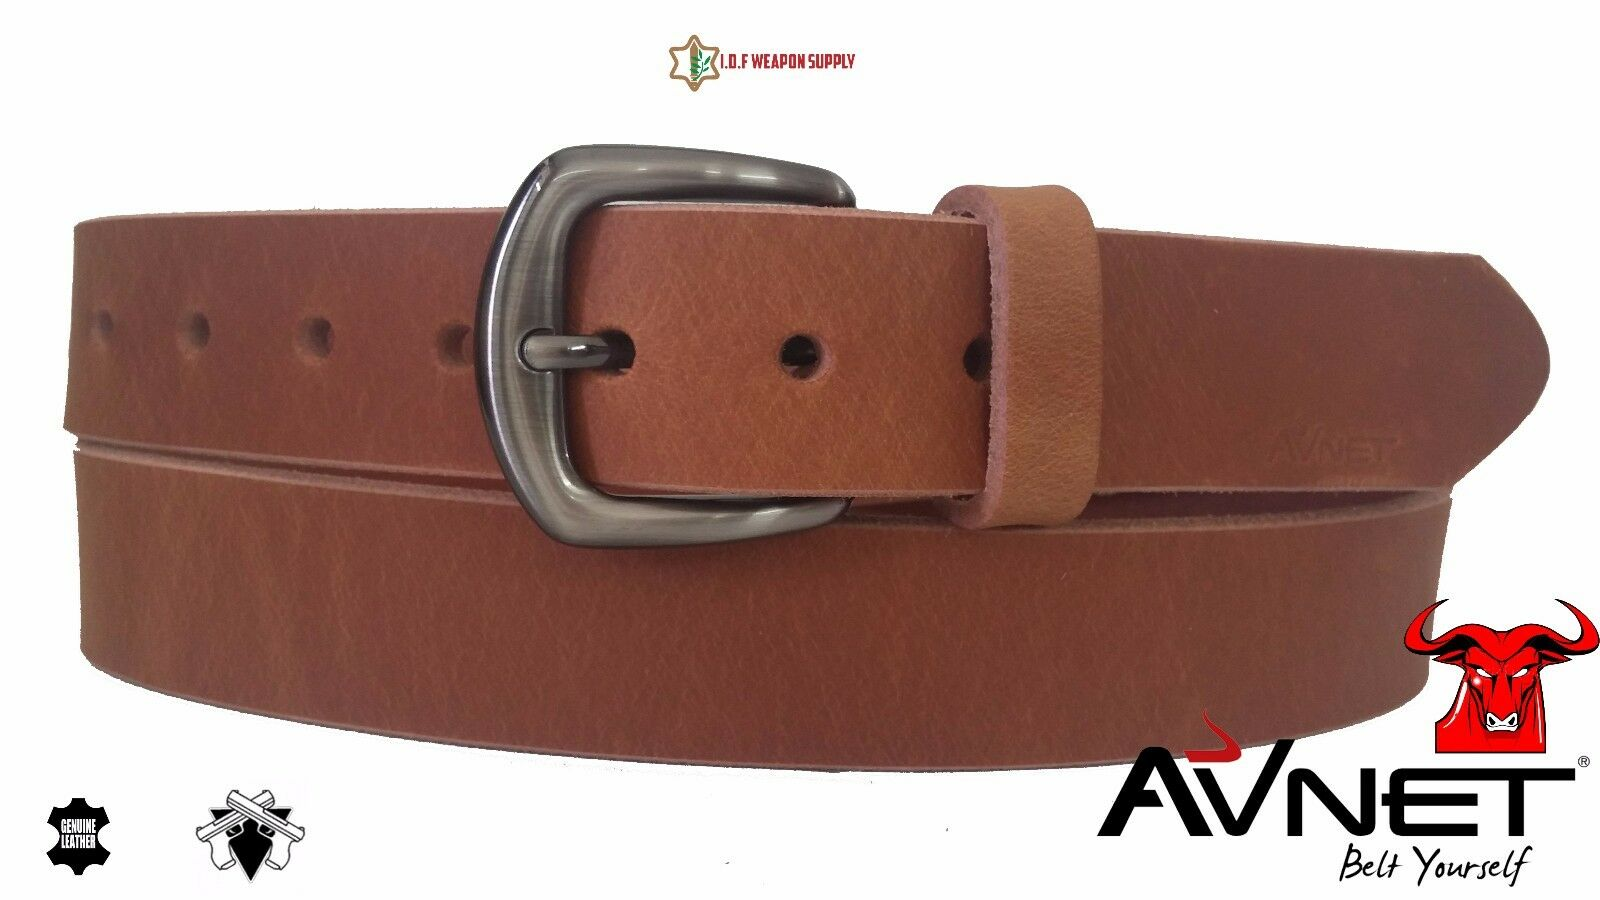 GUN  BELT HOLSTER WORLDS BEST  100% BUFFALO LEATHER ONE LAYER  MILITARY OFFICIAL   choose your favorite